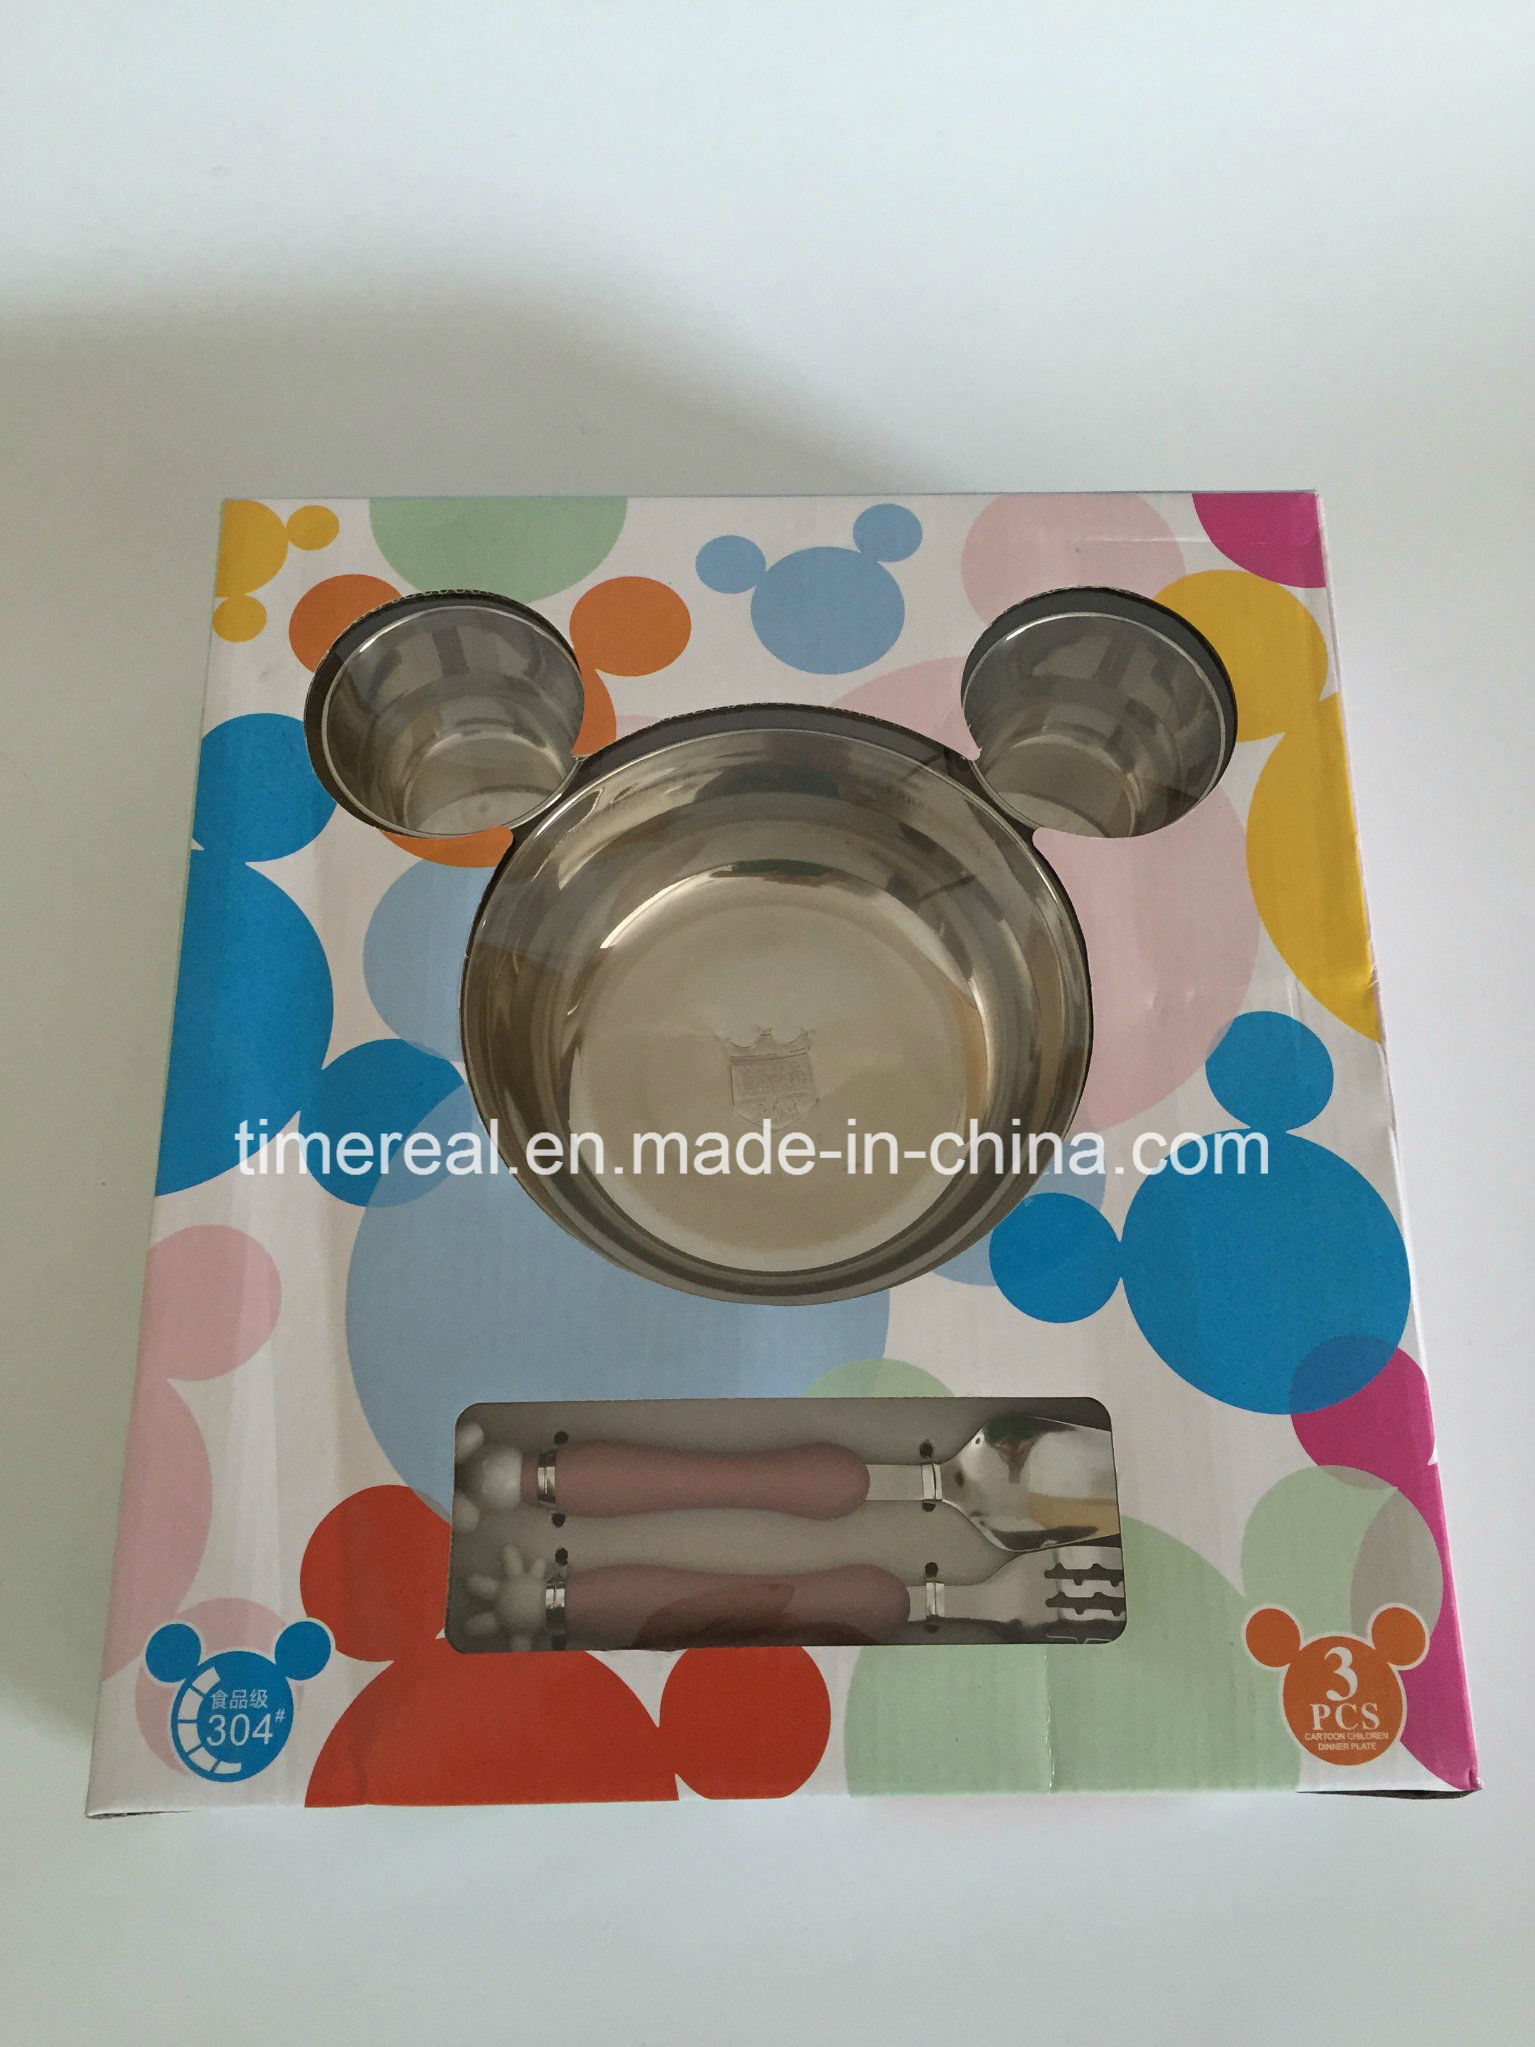 Stainless Steel Gift Fast Food Plate Micky Dinnerware Set Xg-006